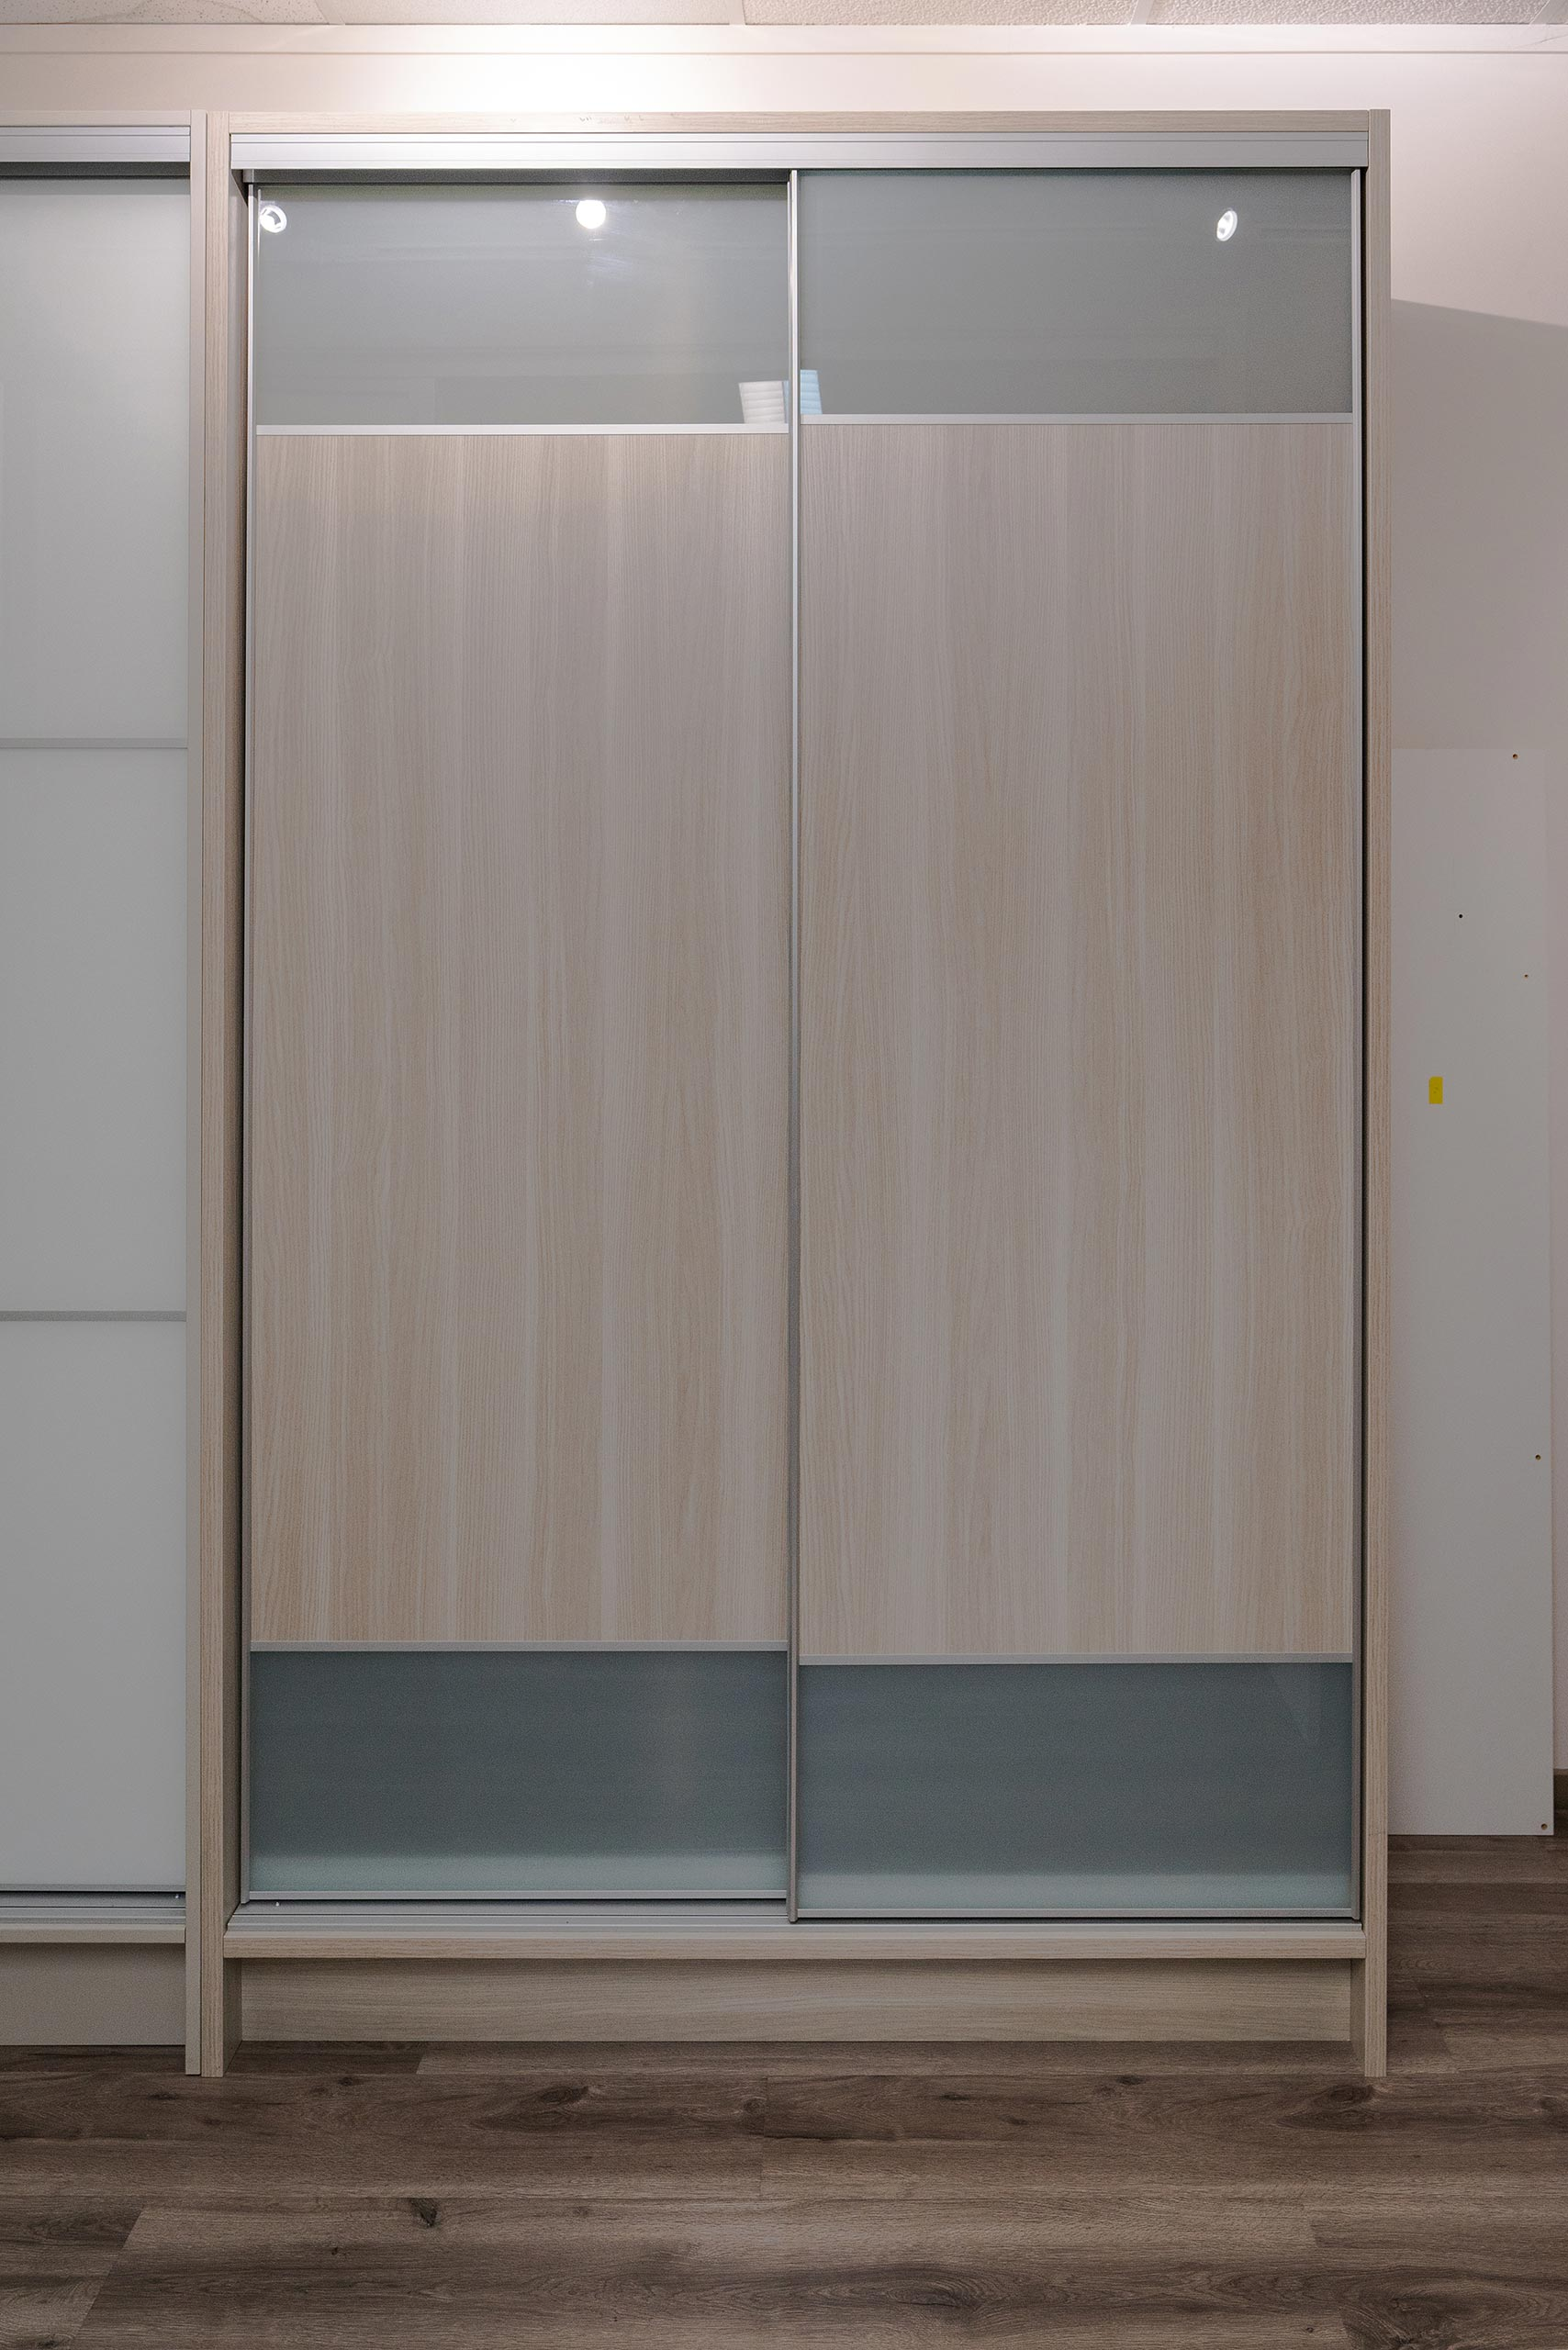 Melamine Sliding Doors The Slide Shop